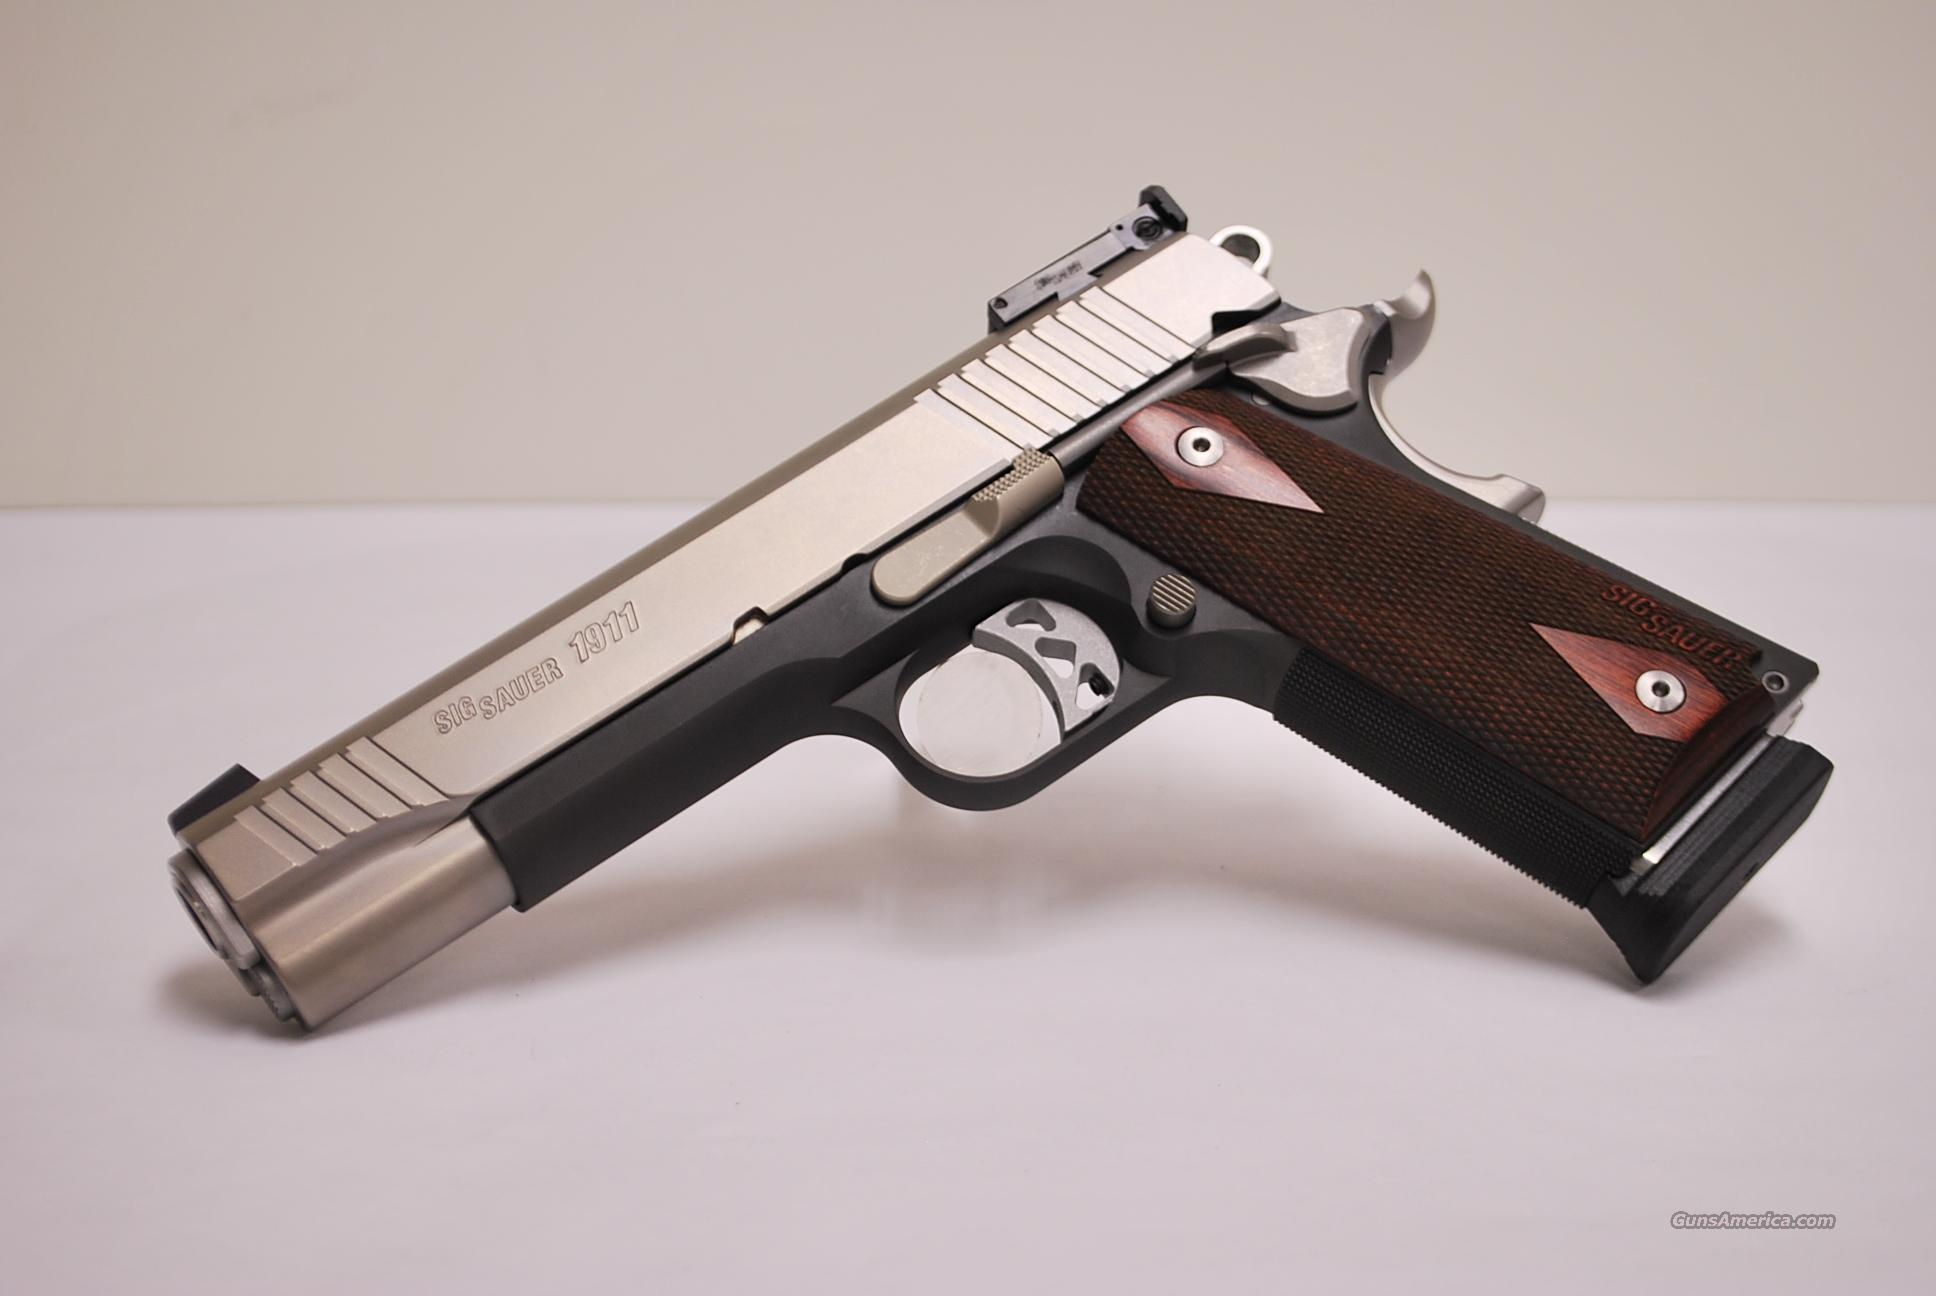 Sig Sauer Traditional Match Elite 1911, .45 ACP  Guns > Pistols > Sig - Sauer/Sigarms Pistols > 1911